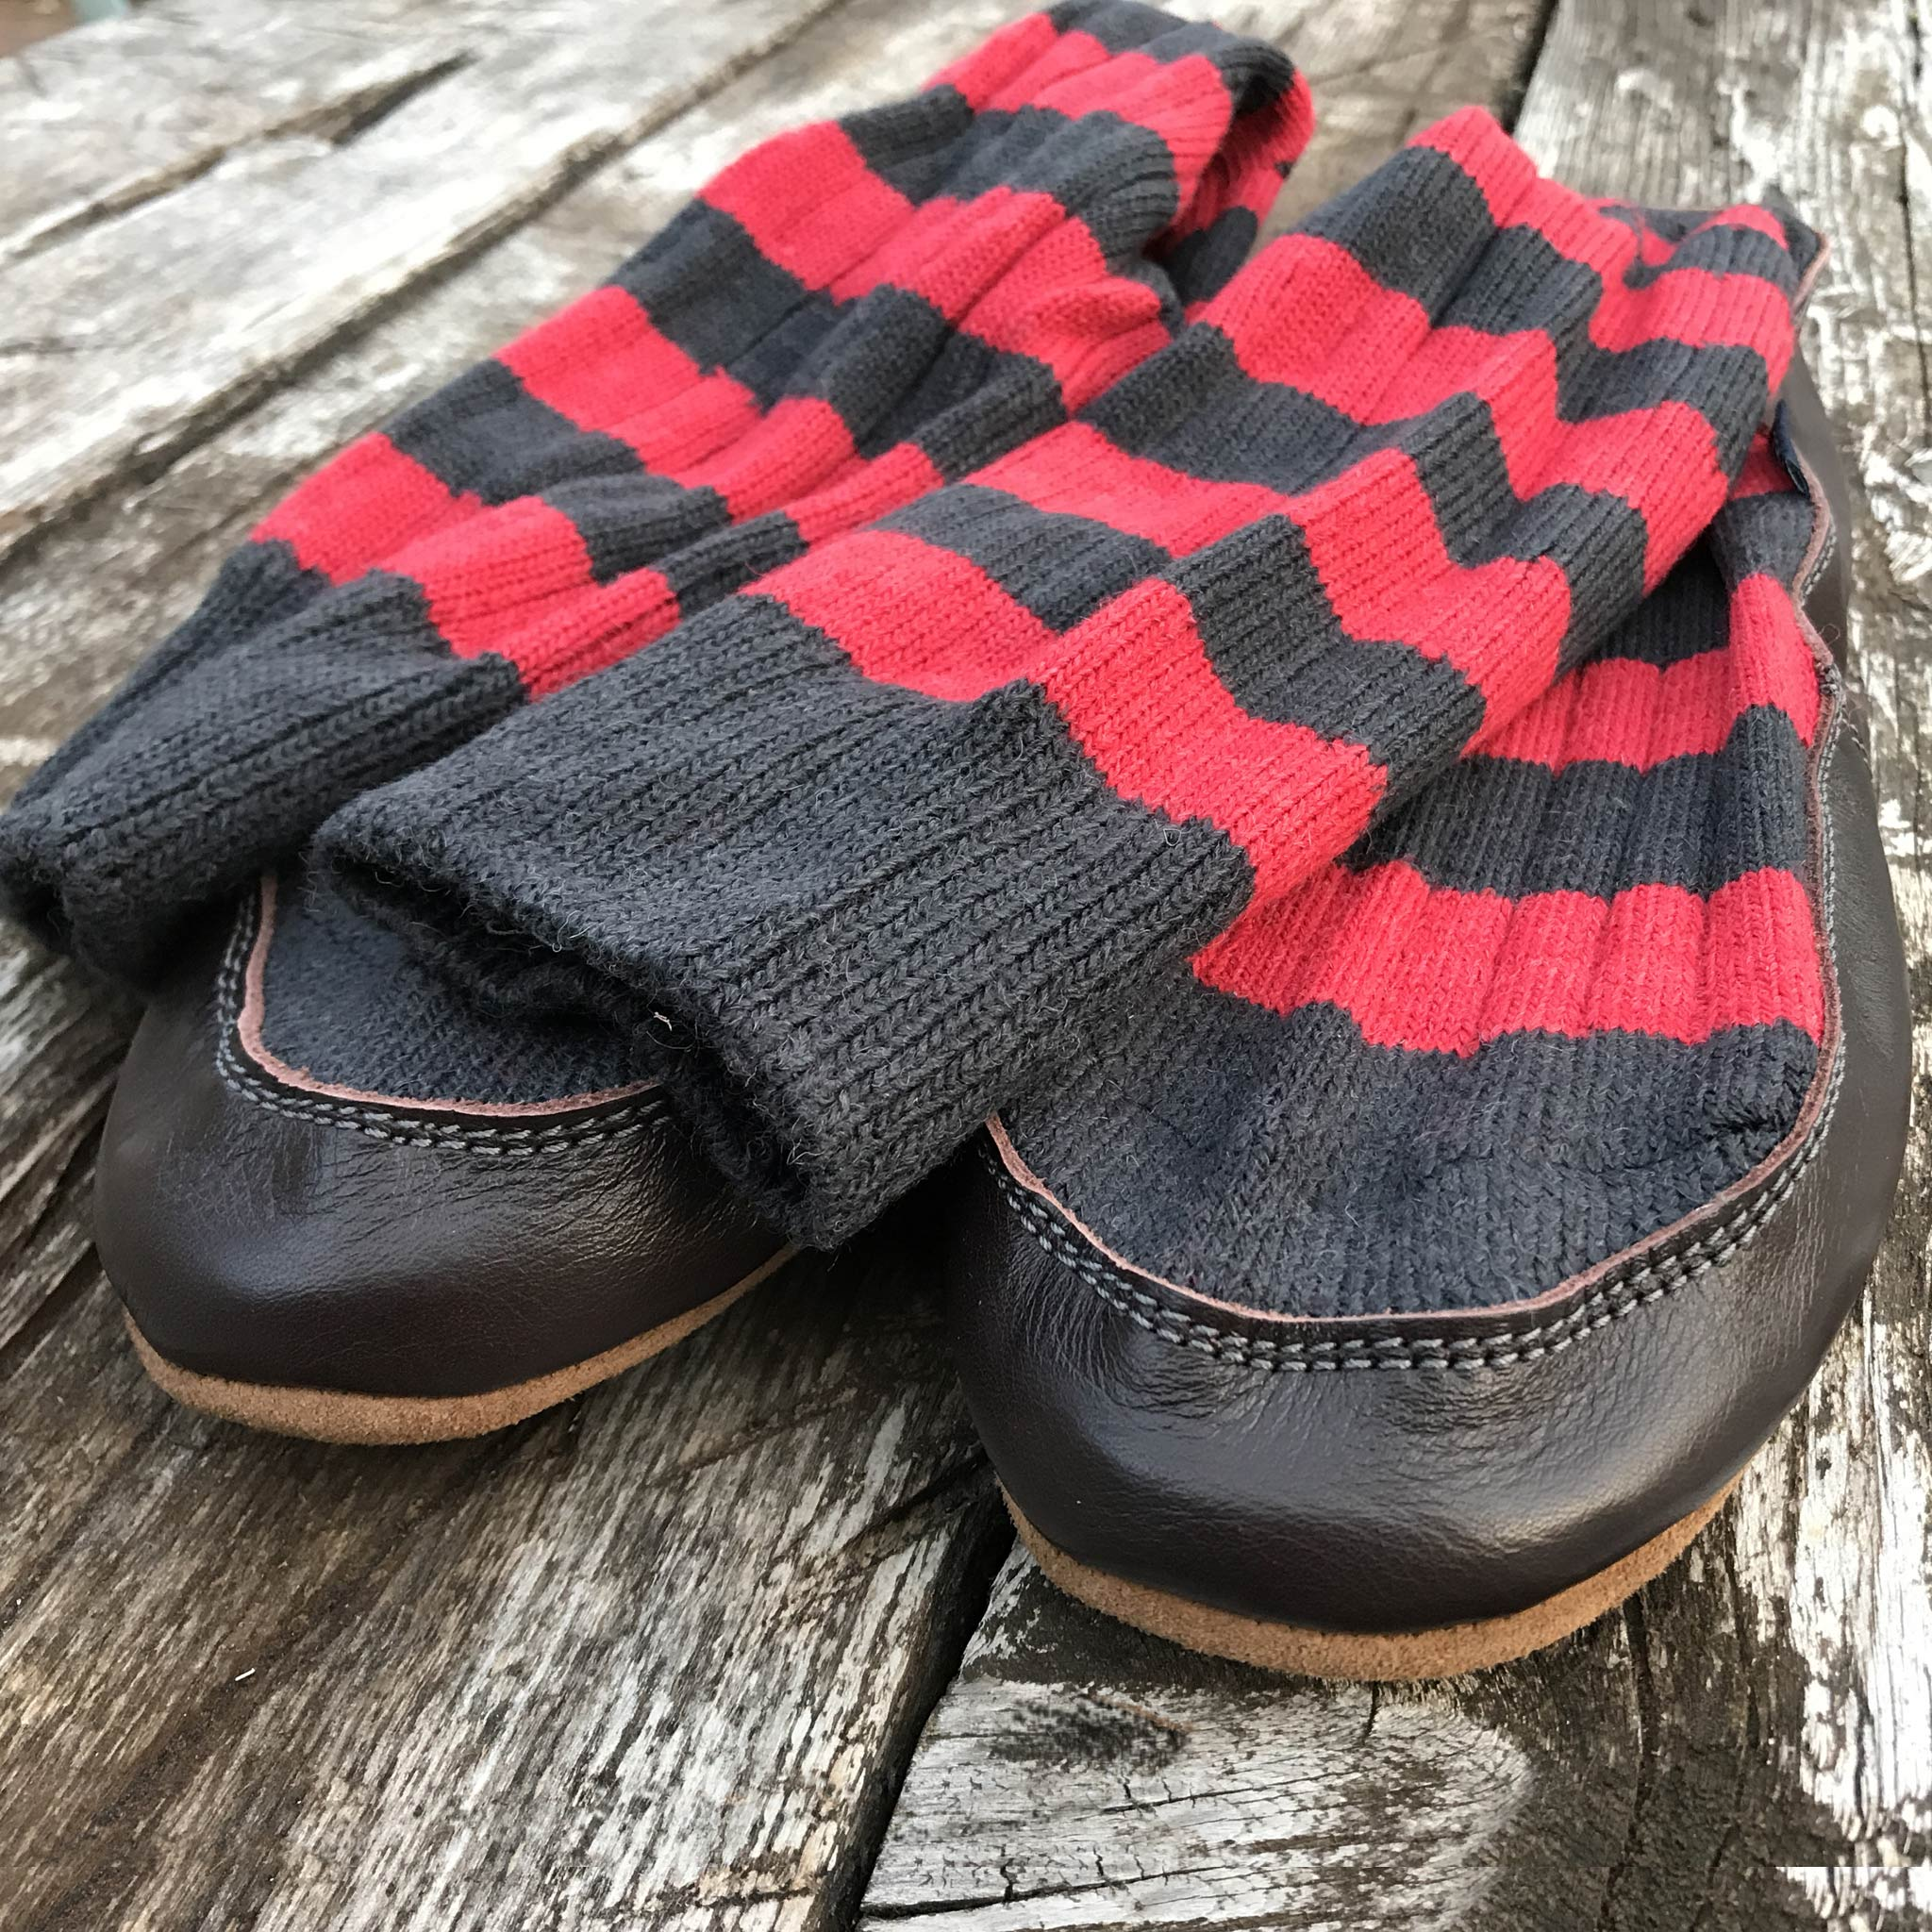 Slipper Sock black and red stripe - front view